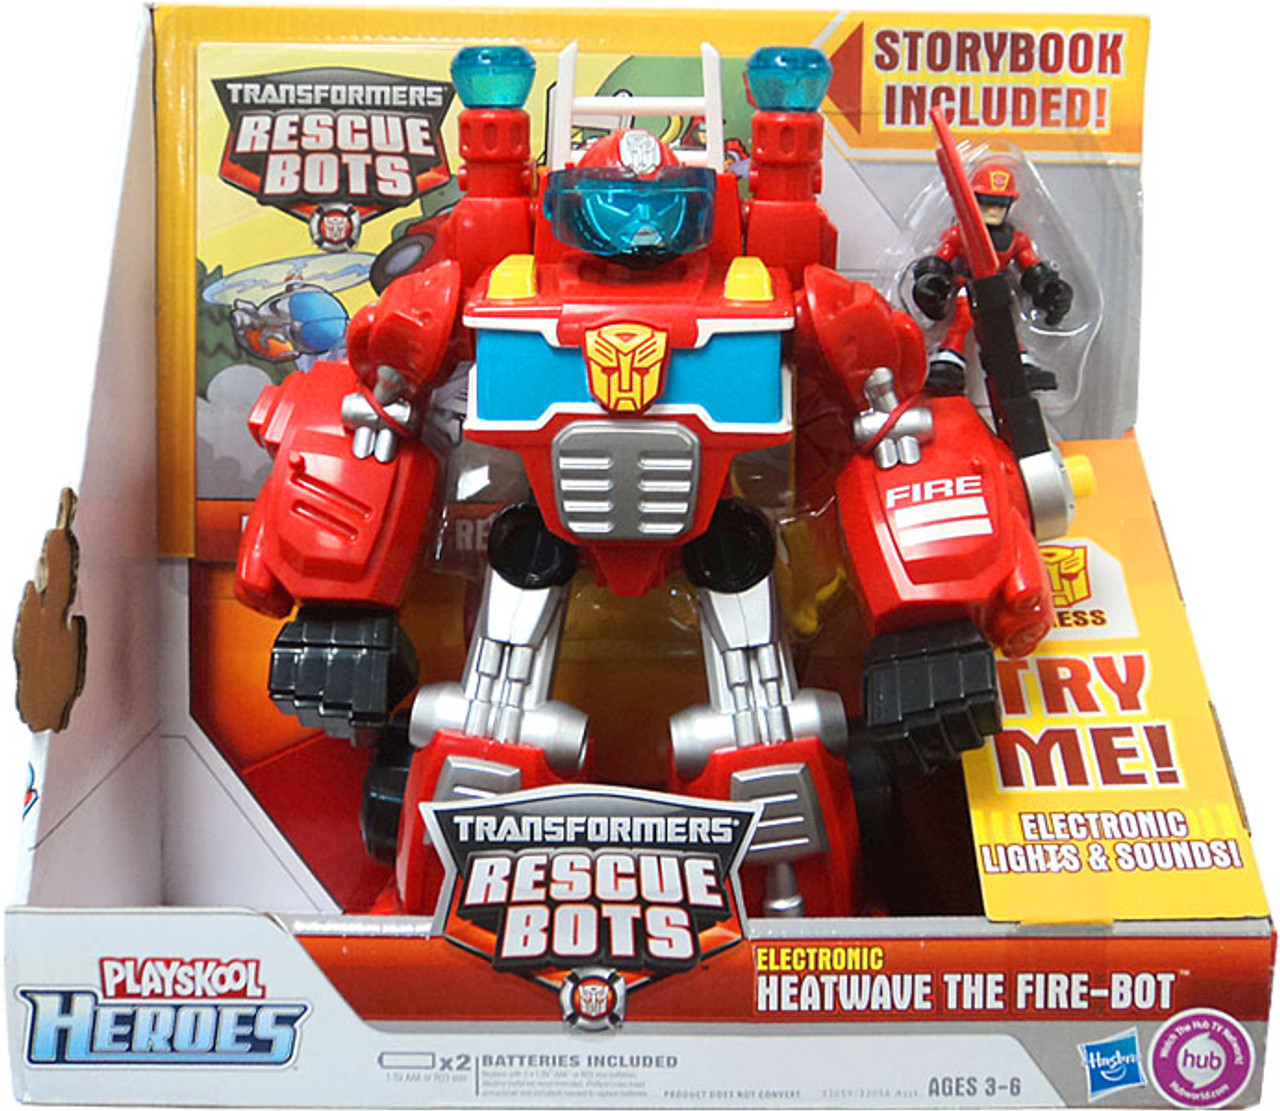 Transformers Rescue Bots Playskool Heroes Electronic Heatwave The Fire-Bot Action Figure